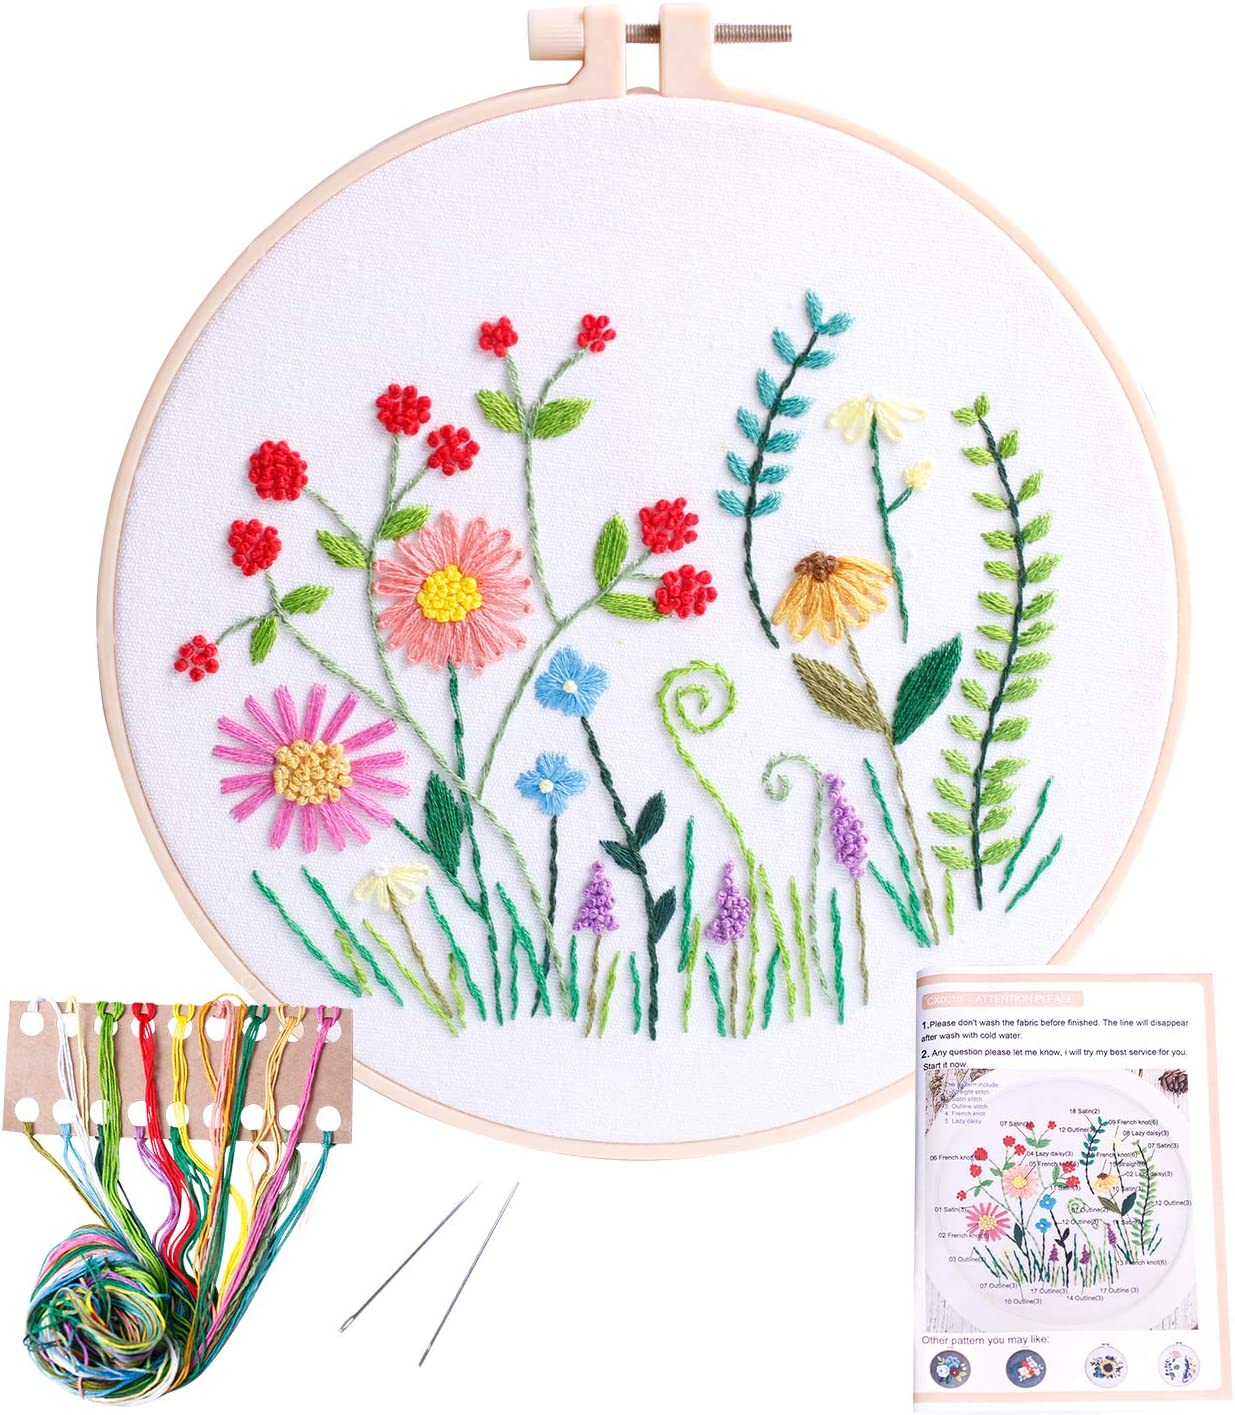 English Embroidery kit George S embroidery kit - George S